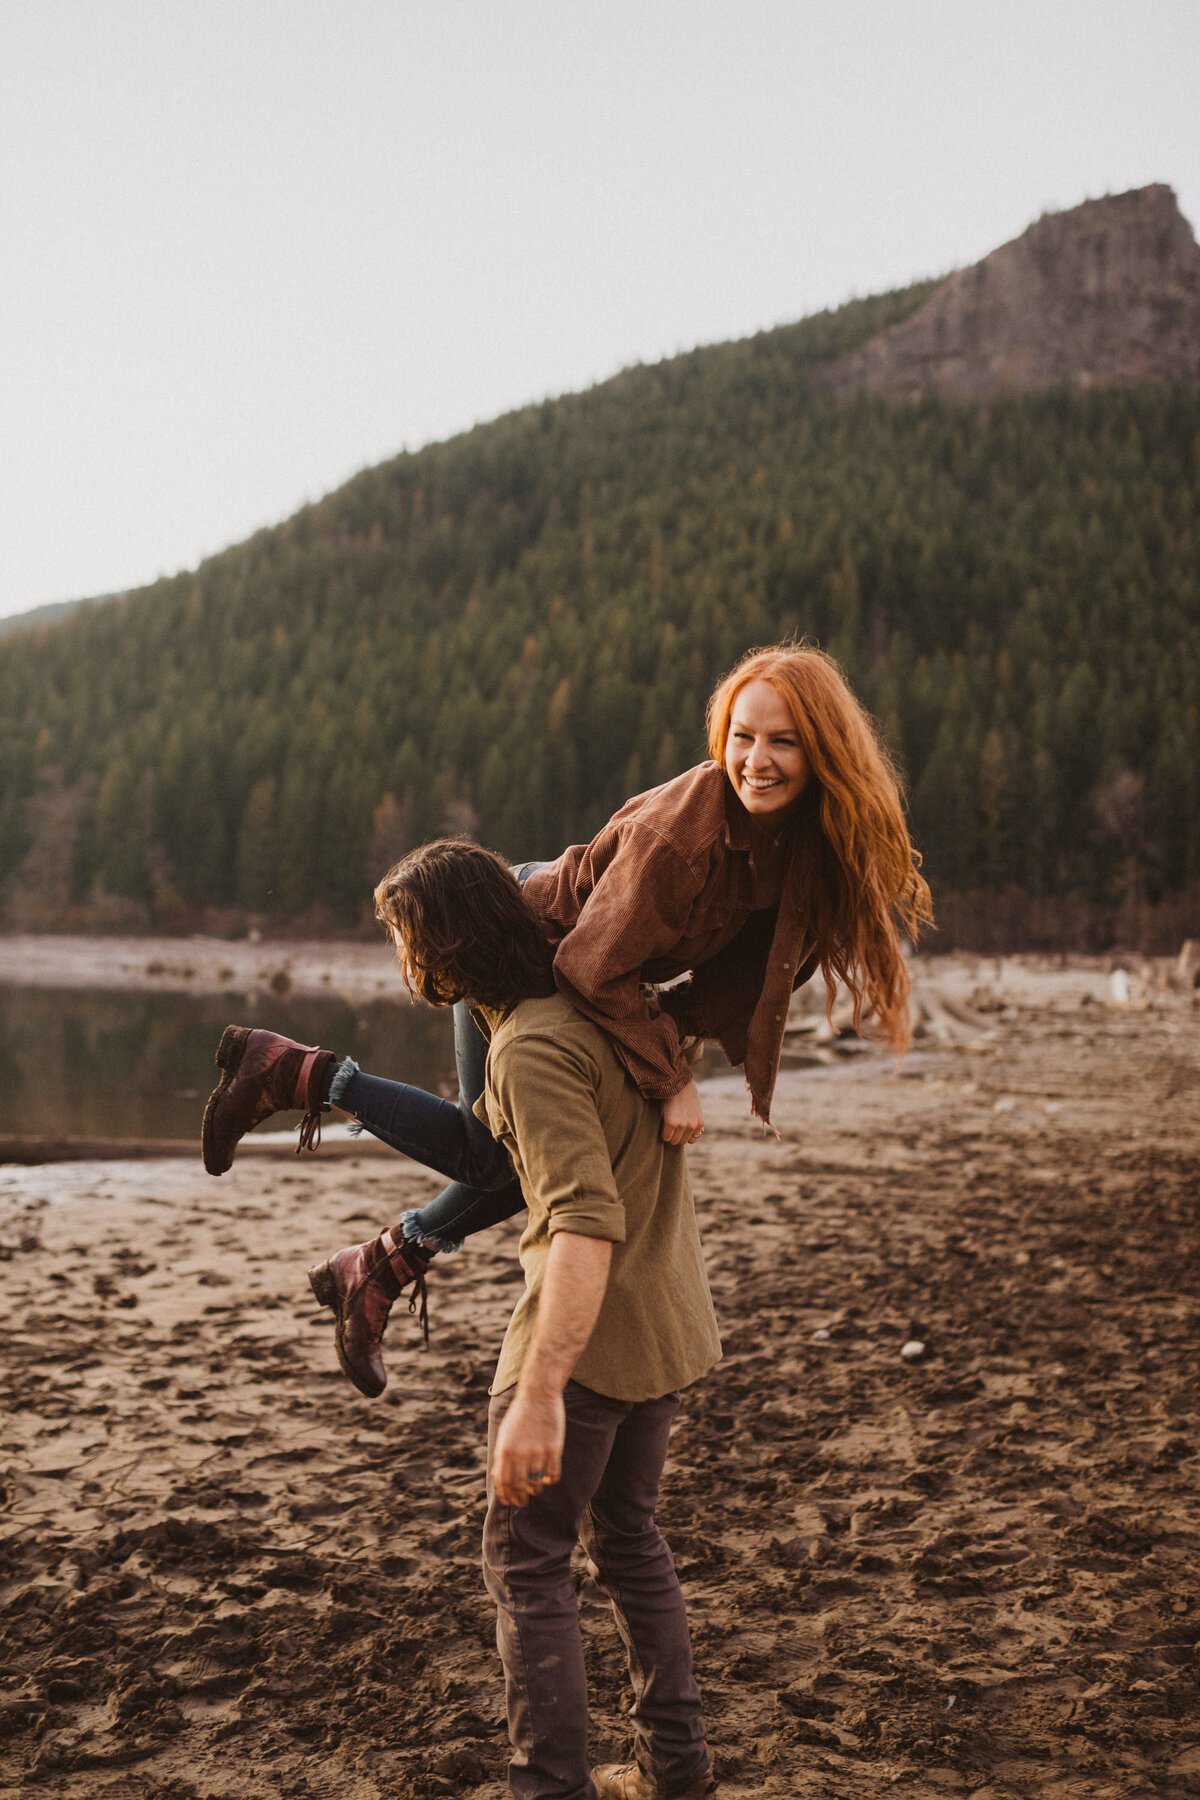 liv_hettinga_photography_seattle_lake_adventure_elopement-97